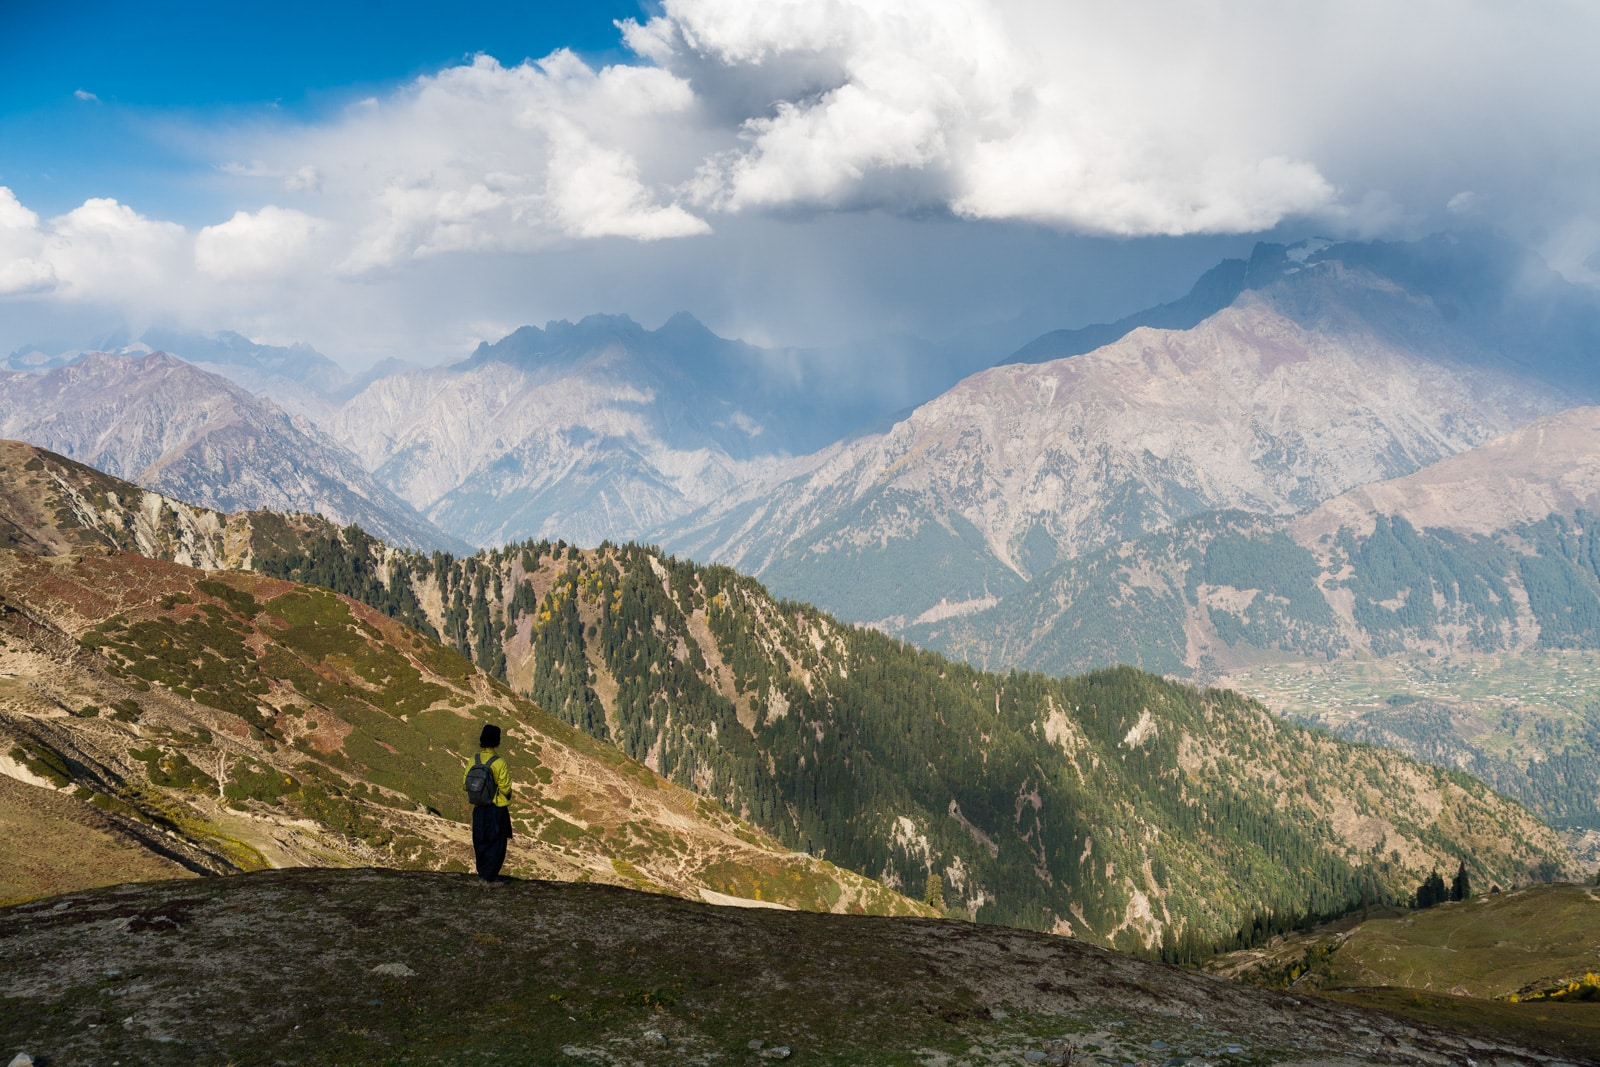 Trekking in Pakistan in Kalam, Swat Valley, Khyber Pakhtunkhwa